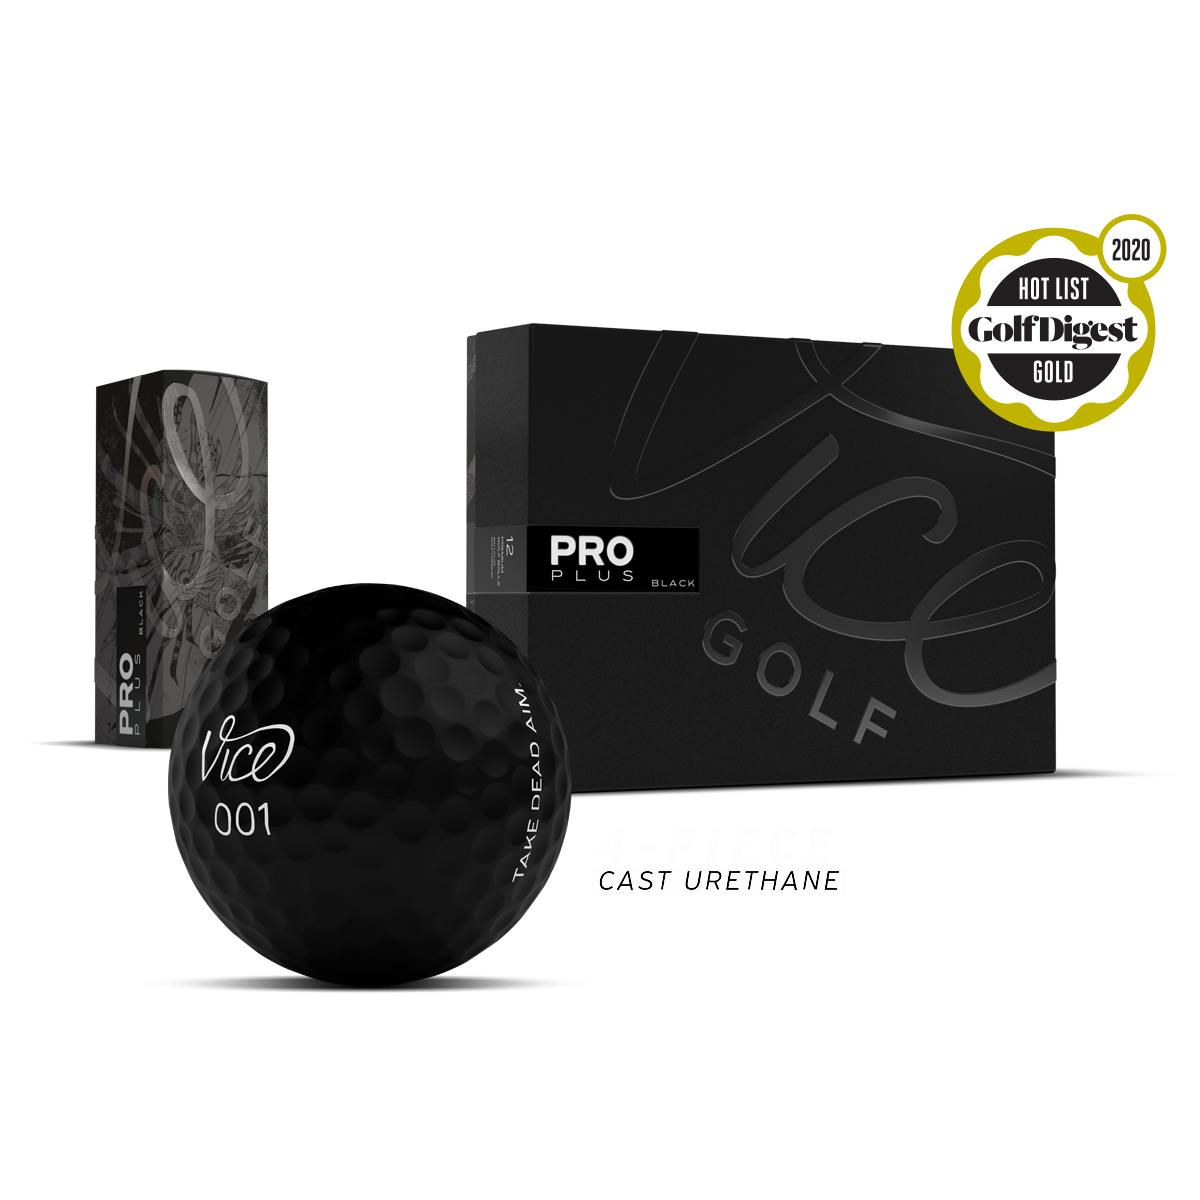 Pro Plus Uncrate package